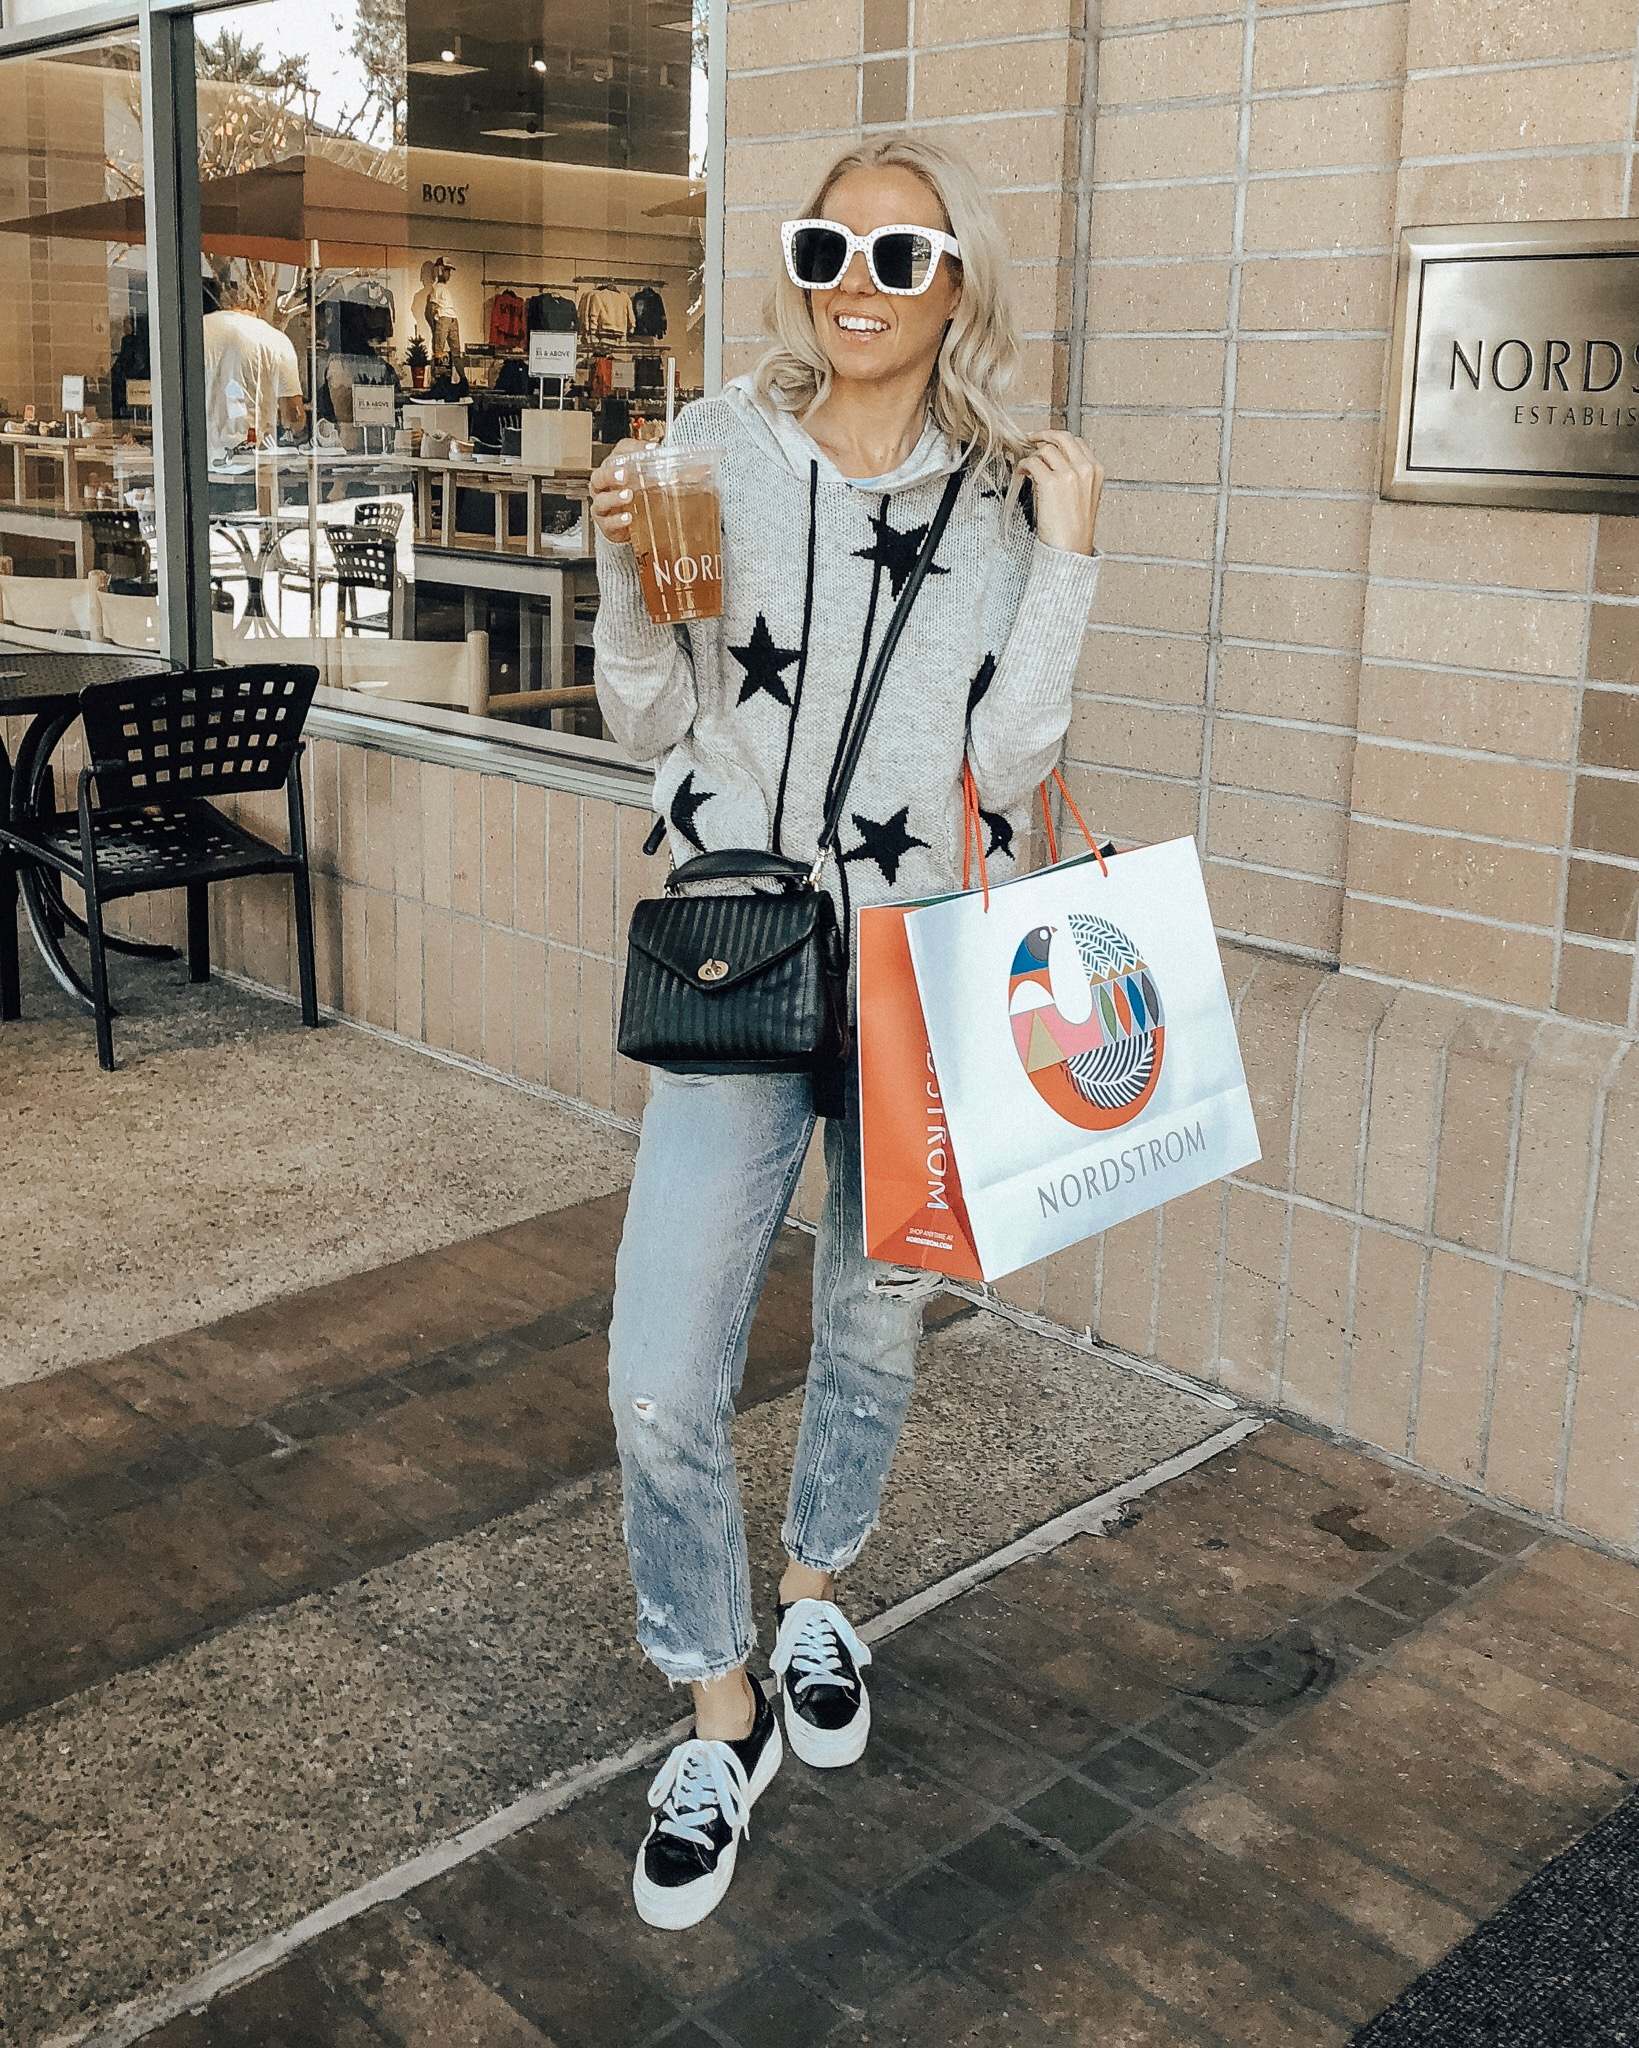 NORDSTROM'S HALF-YEARLY SALE PICKS- Jaclyn De Leon Style + online shopping + casual style + nordstrom + after christmas shopping + mom style + star print sweater + high waisted mom jeans + sneakers + sole society handbag + retro style sunglasses + sale picks + winter street style